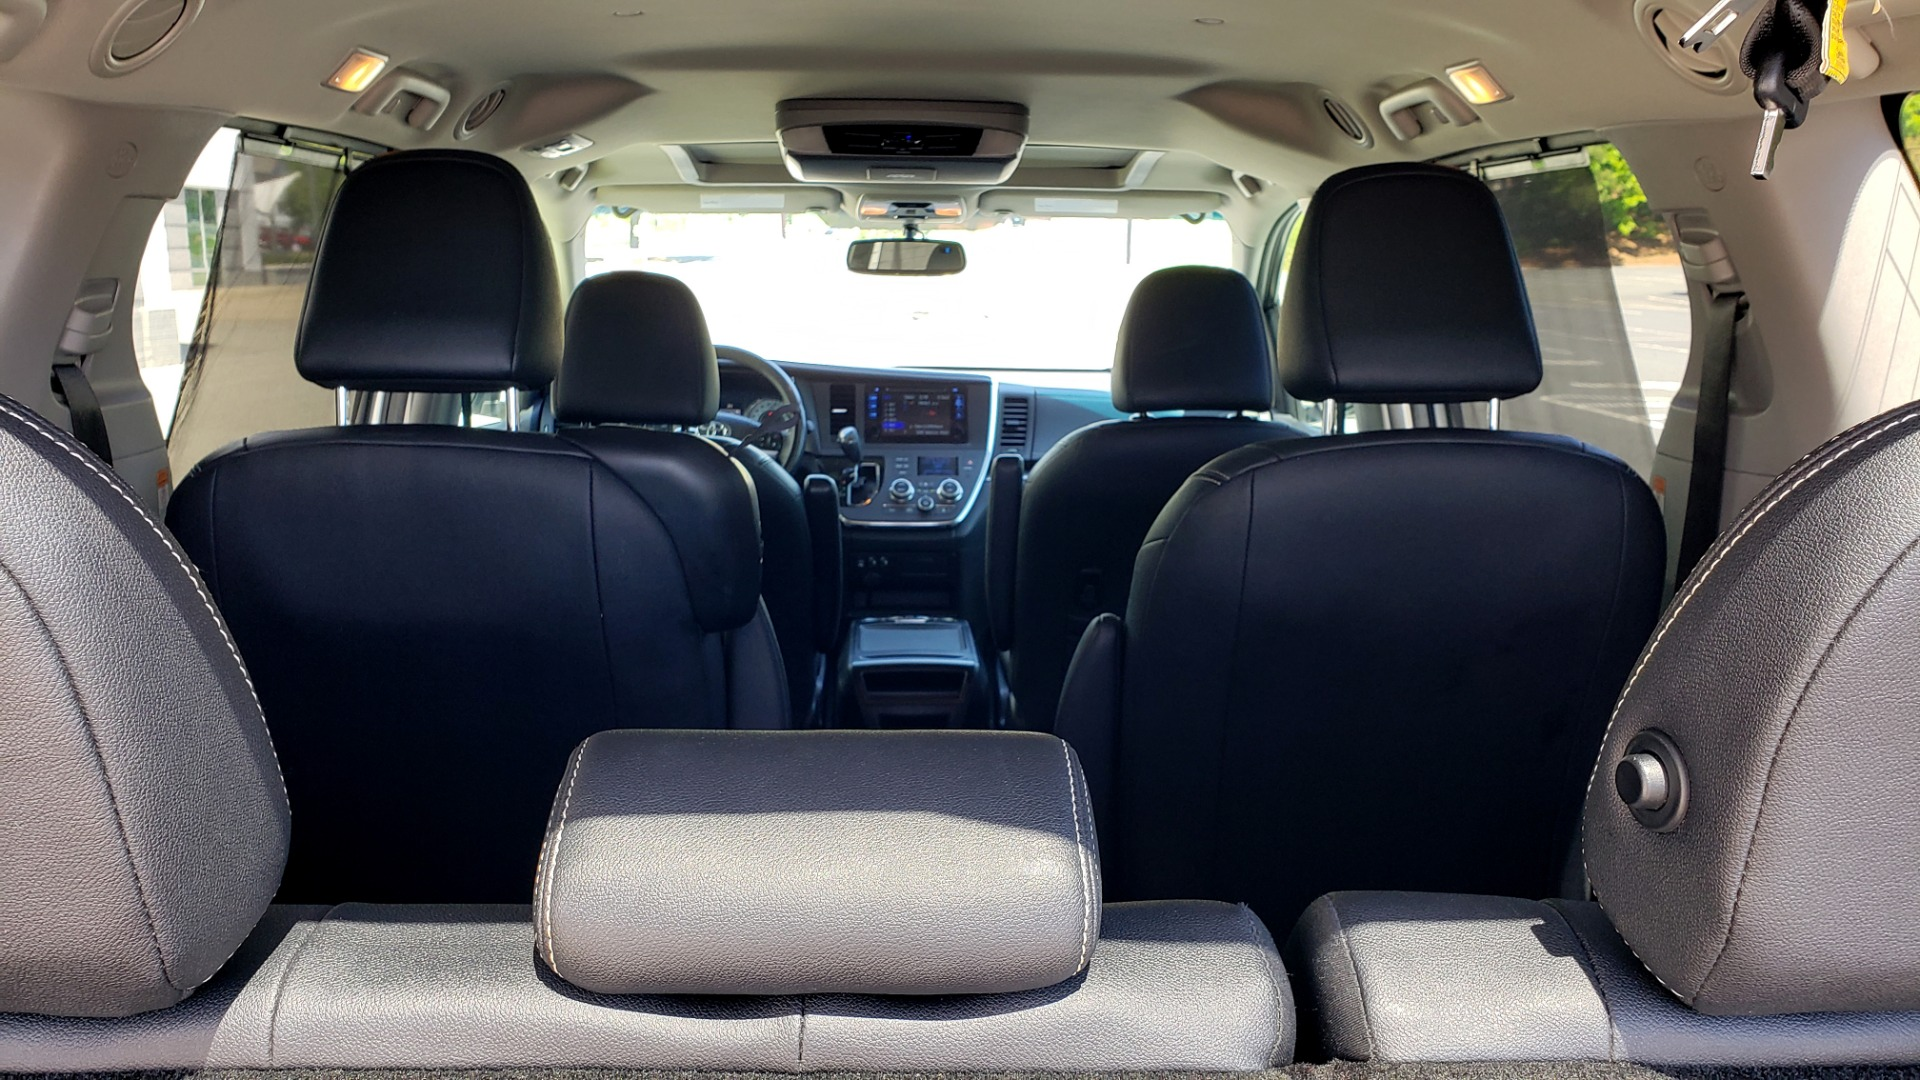 Used 2015 Toyota SIENNA SE 3.5L / FWD / 3-ROWS / 8-PASS / SUNROOF / DVD / REARVIEW for sale $21,995 at Formula Imports in Charlotte NC 28227 20